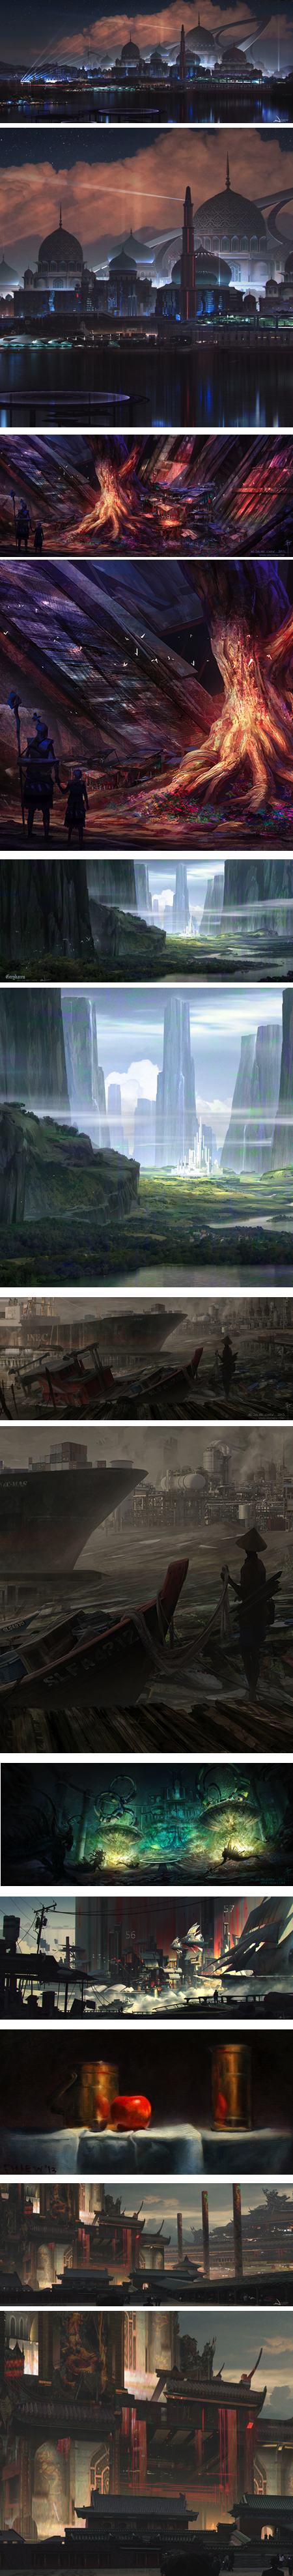 Ian Jun Wei Chiew, concept art and illustration